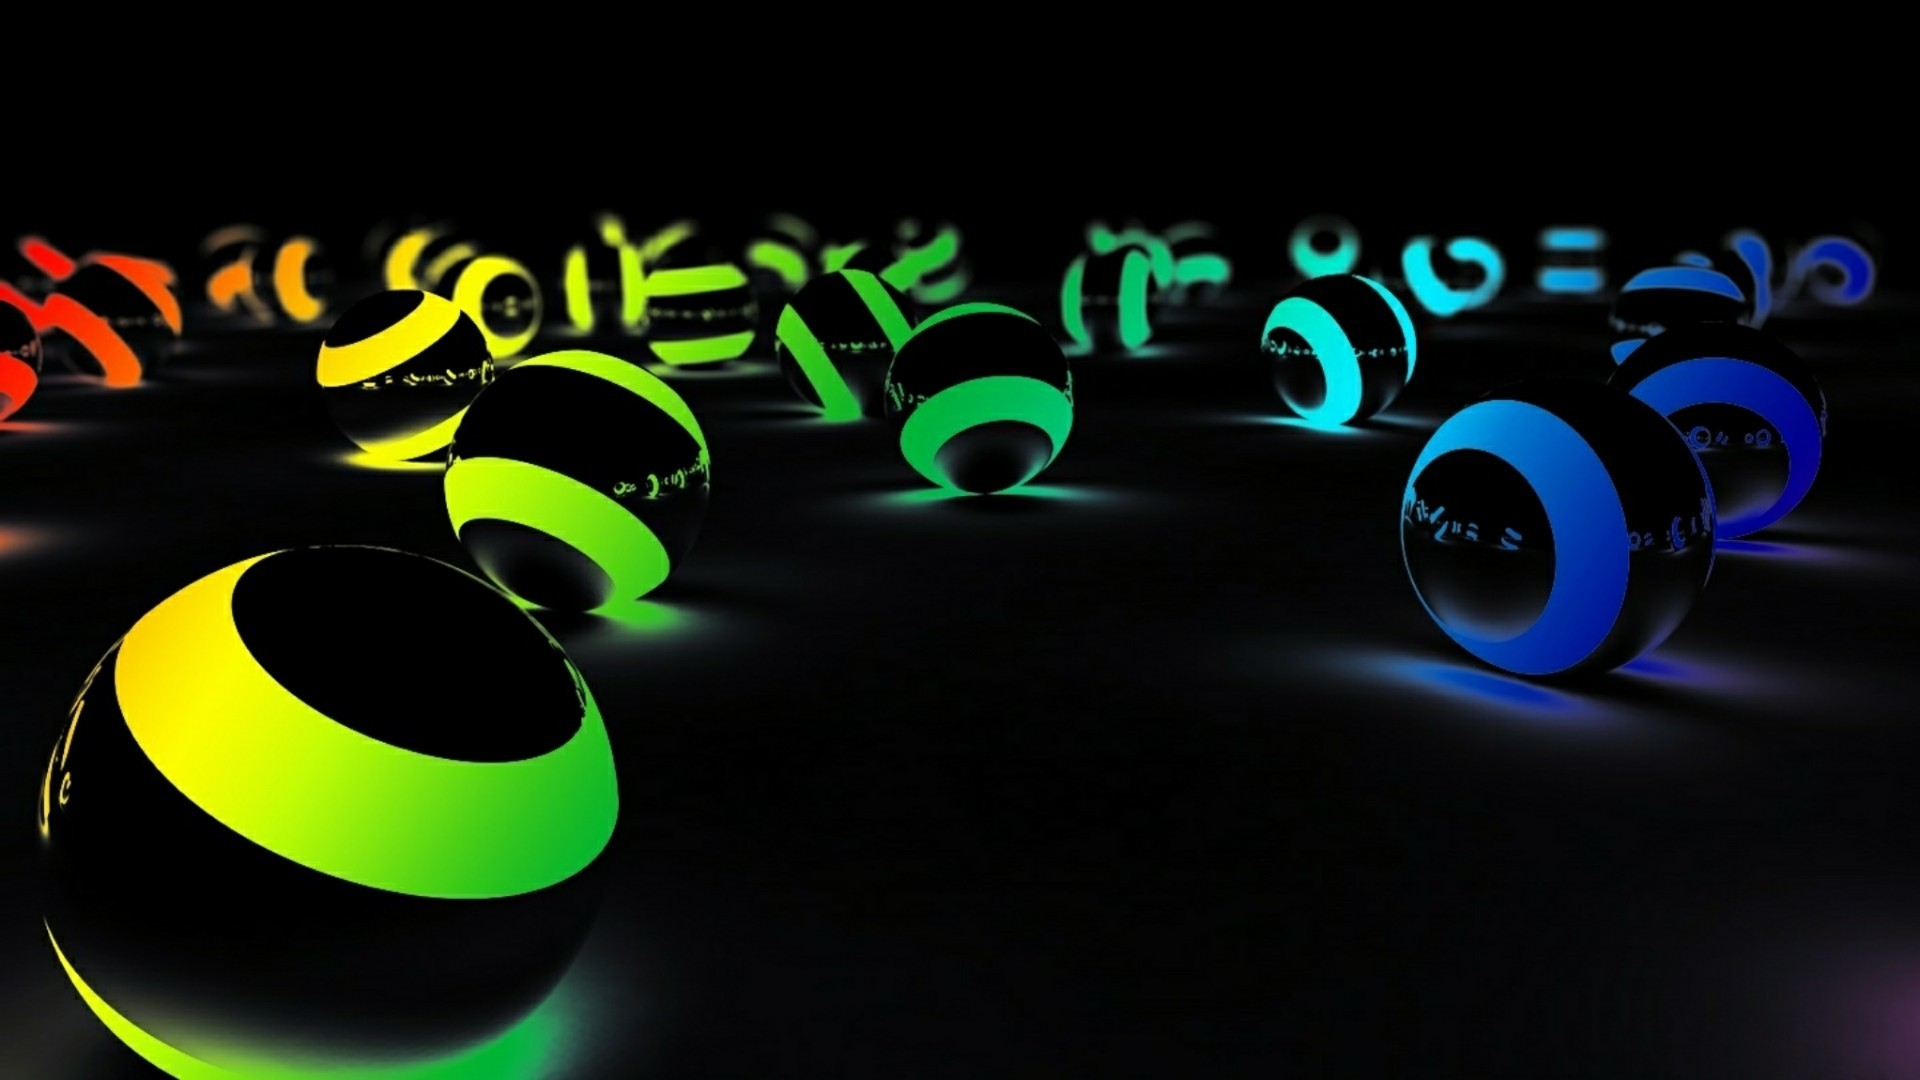 Res: 1920x1080, 3D Neon Colored Balls Wallpaper | Wallpaper Studio 10 | Tens of thousands  HD and UltraHD wallpapers for Android, Windows and Xbox